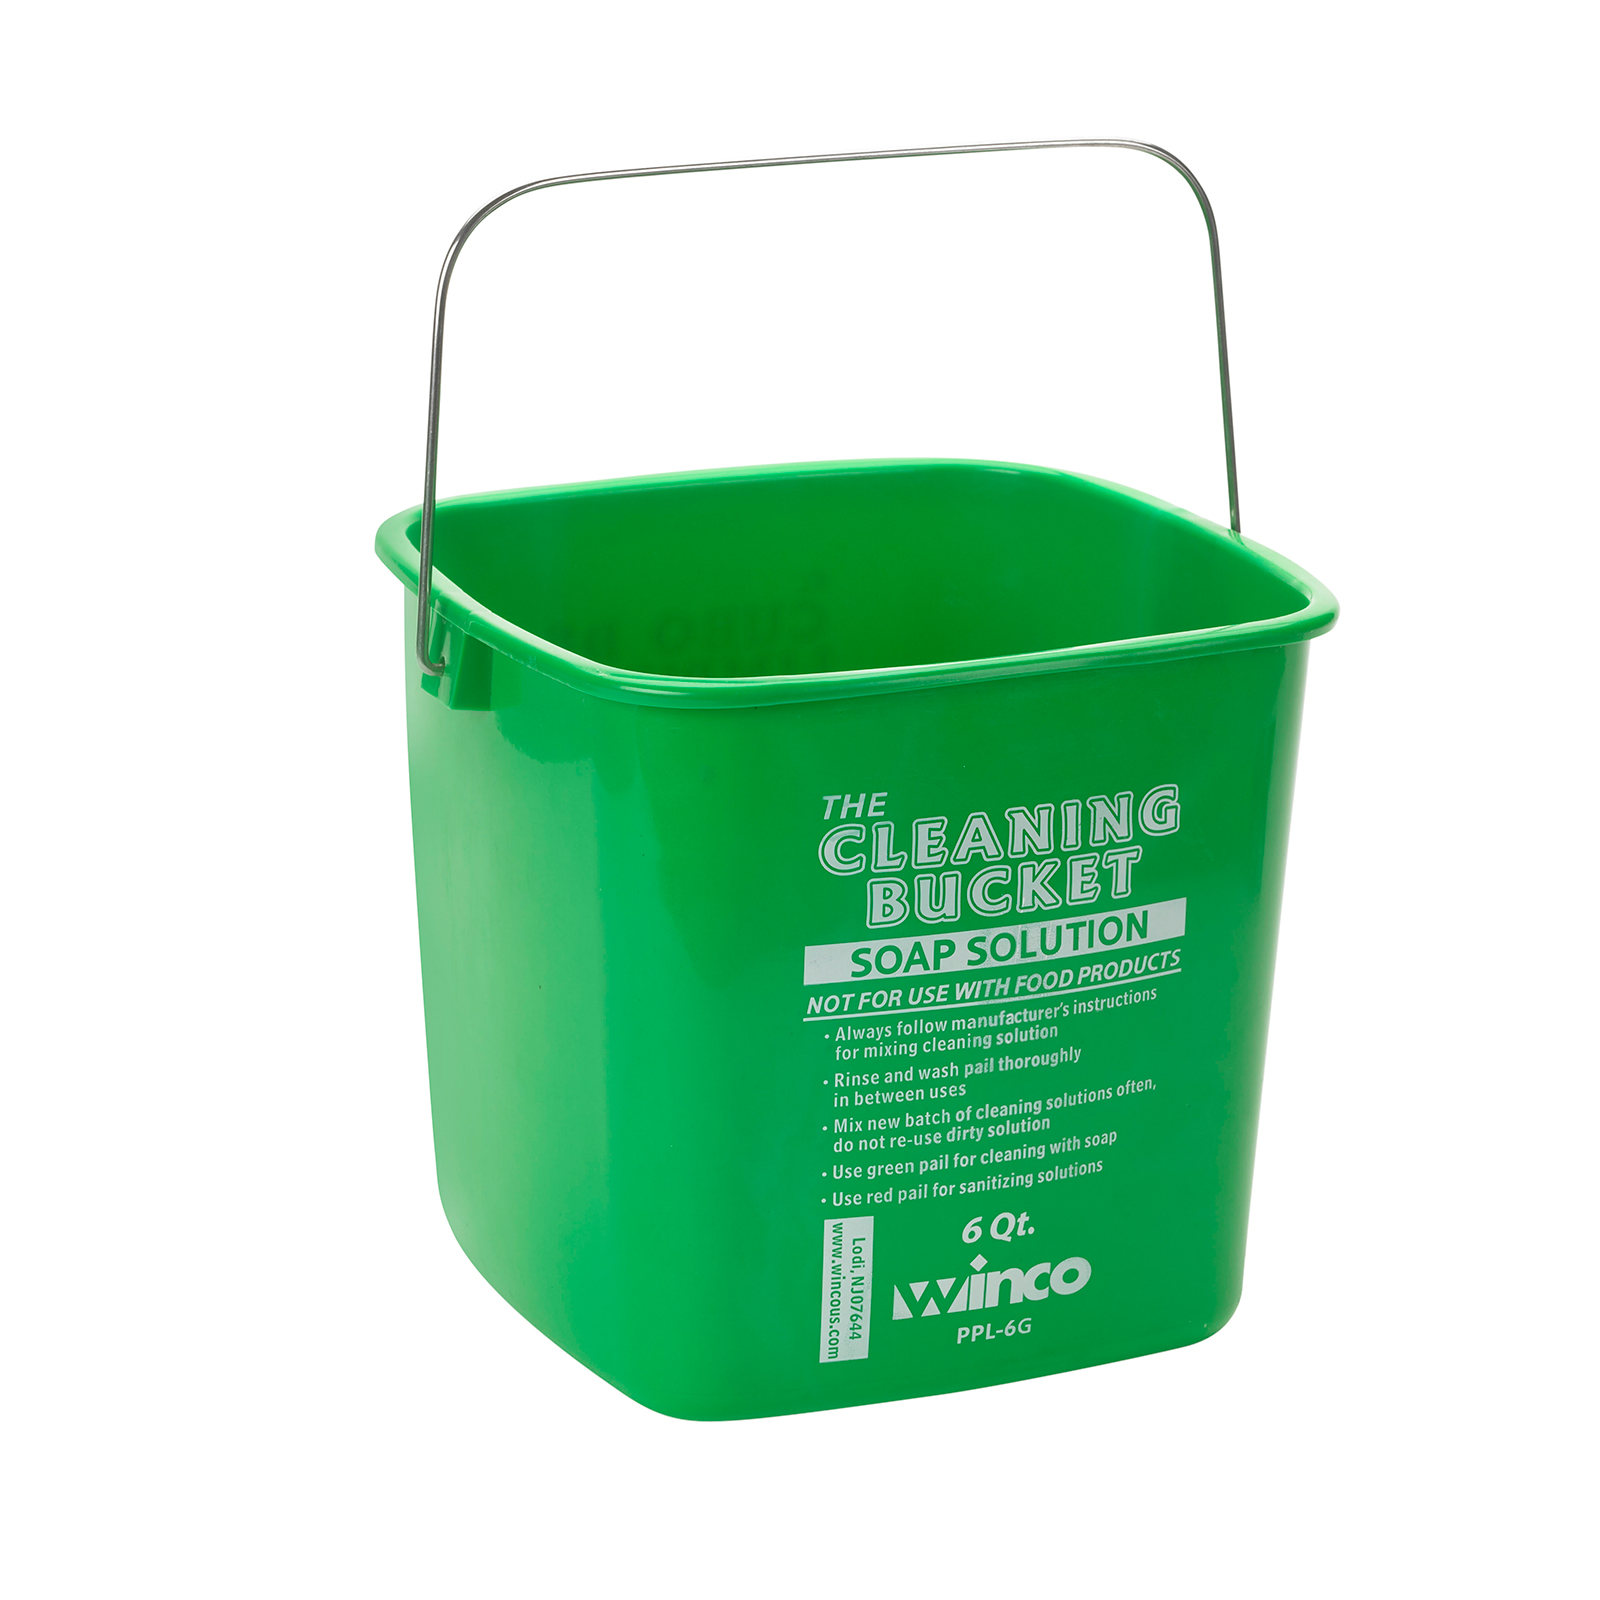 Winco PPL-6G bucket